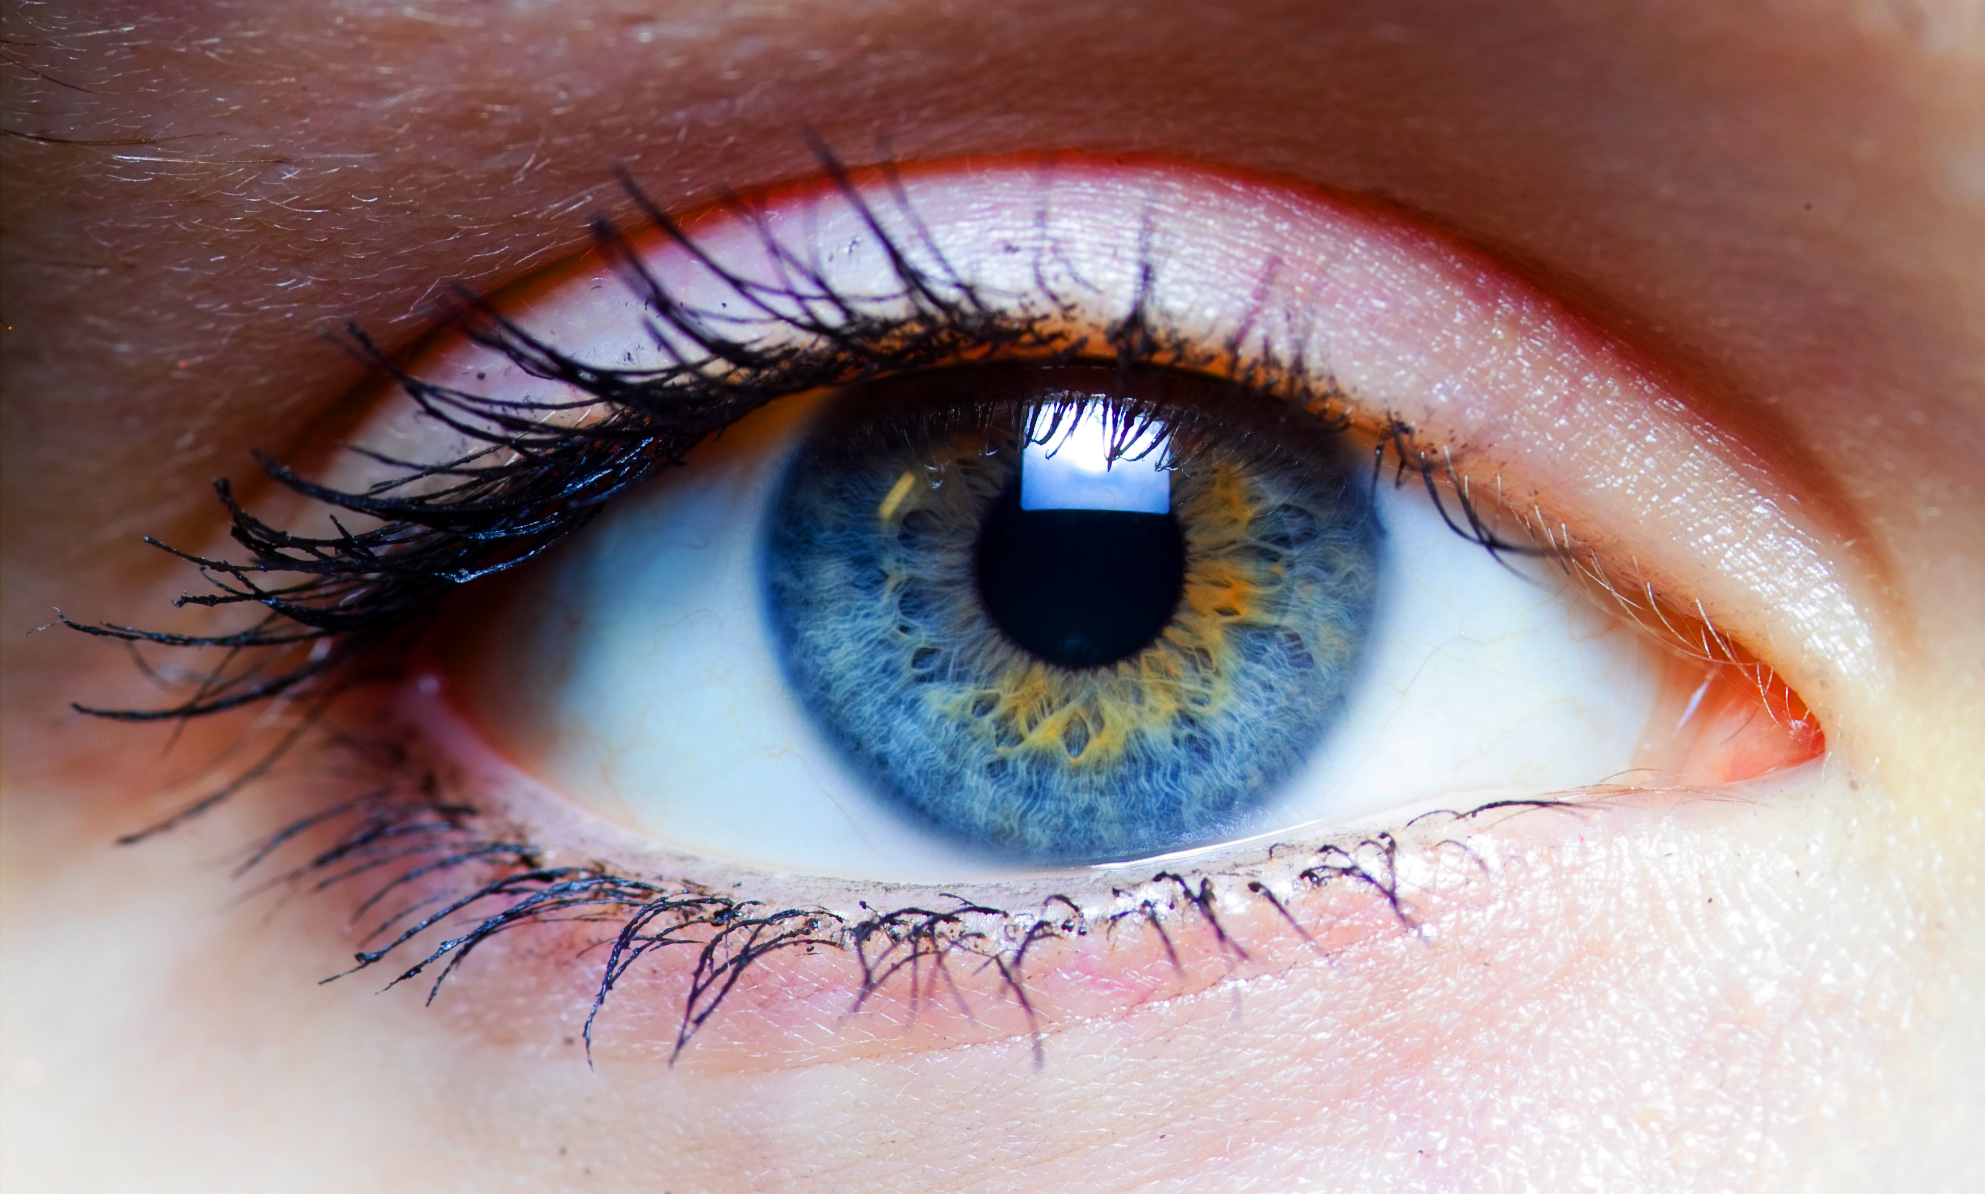 Visual learning with the eye